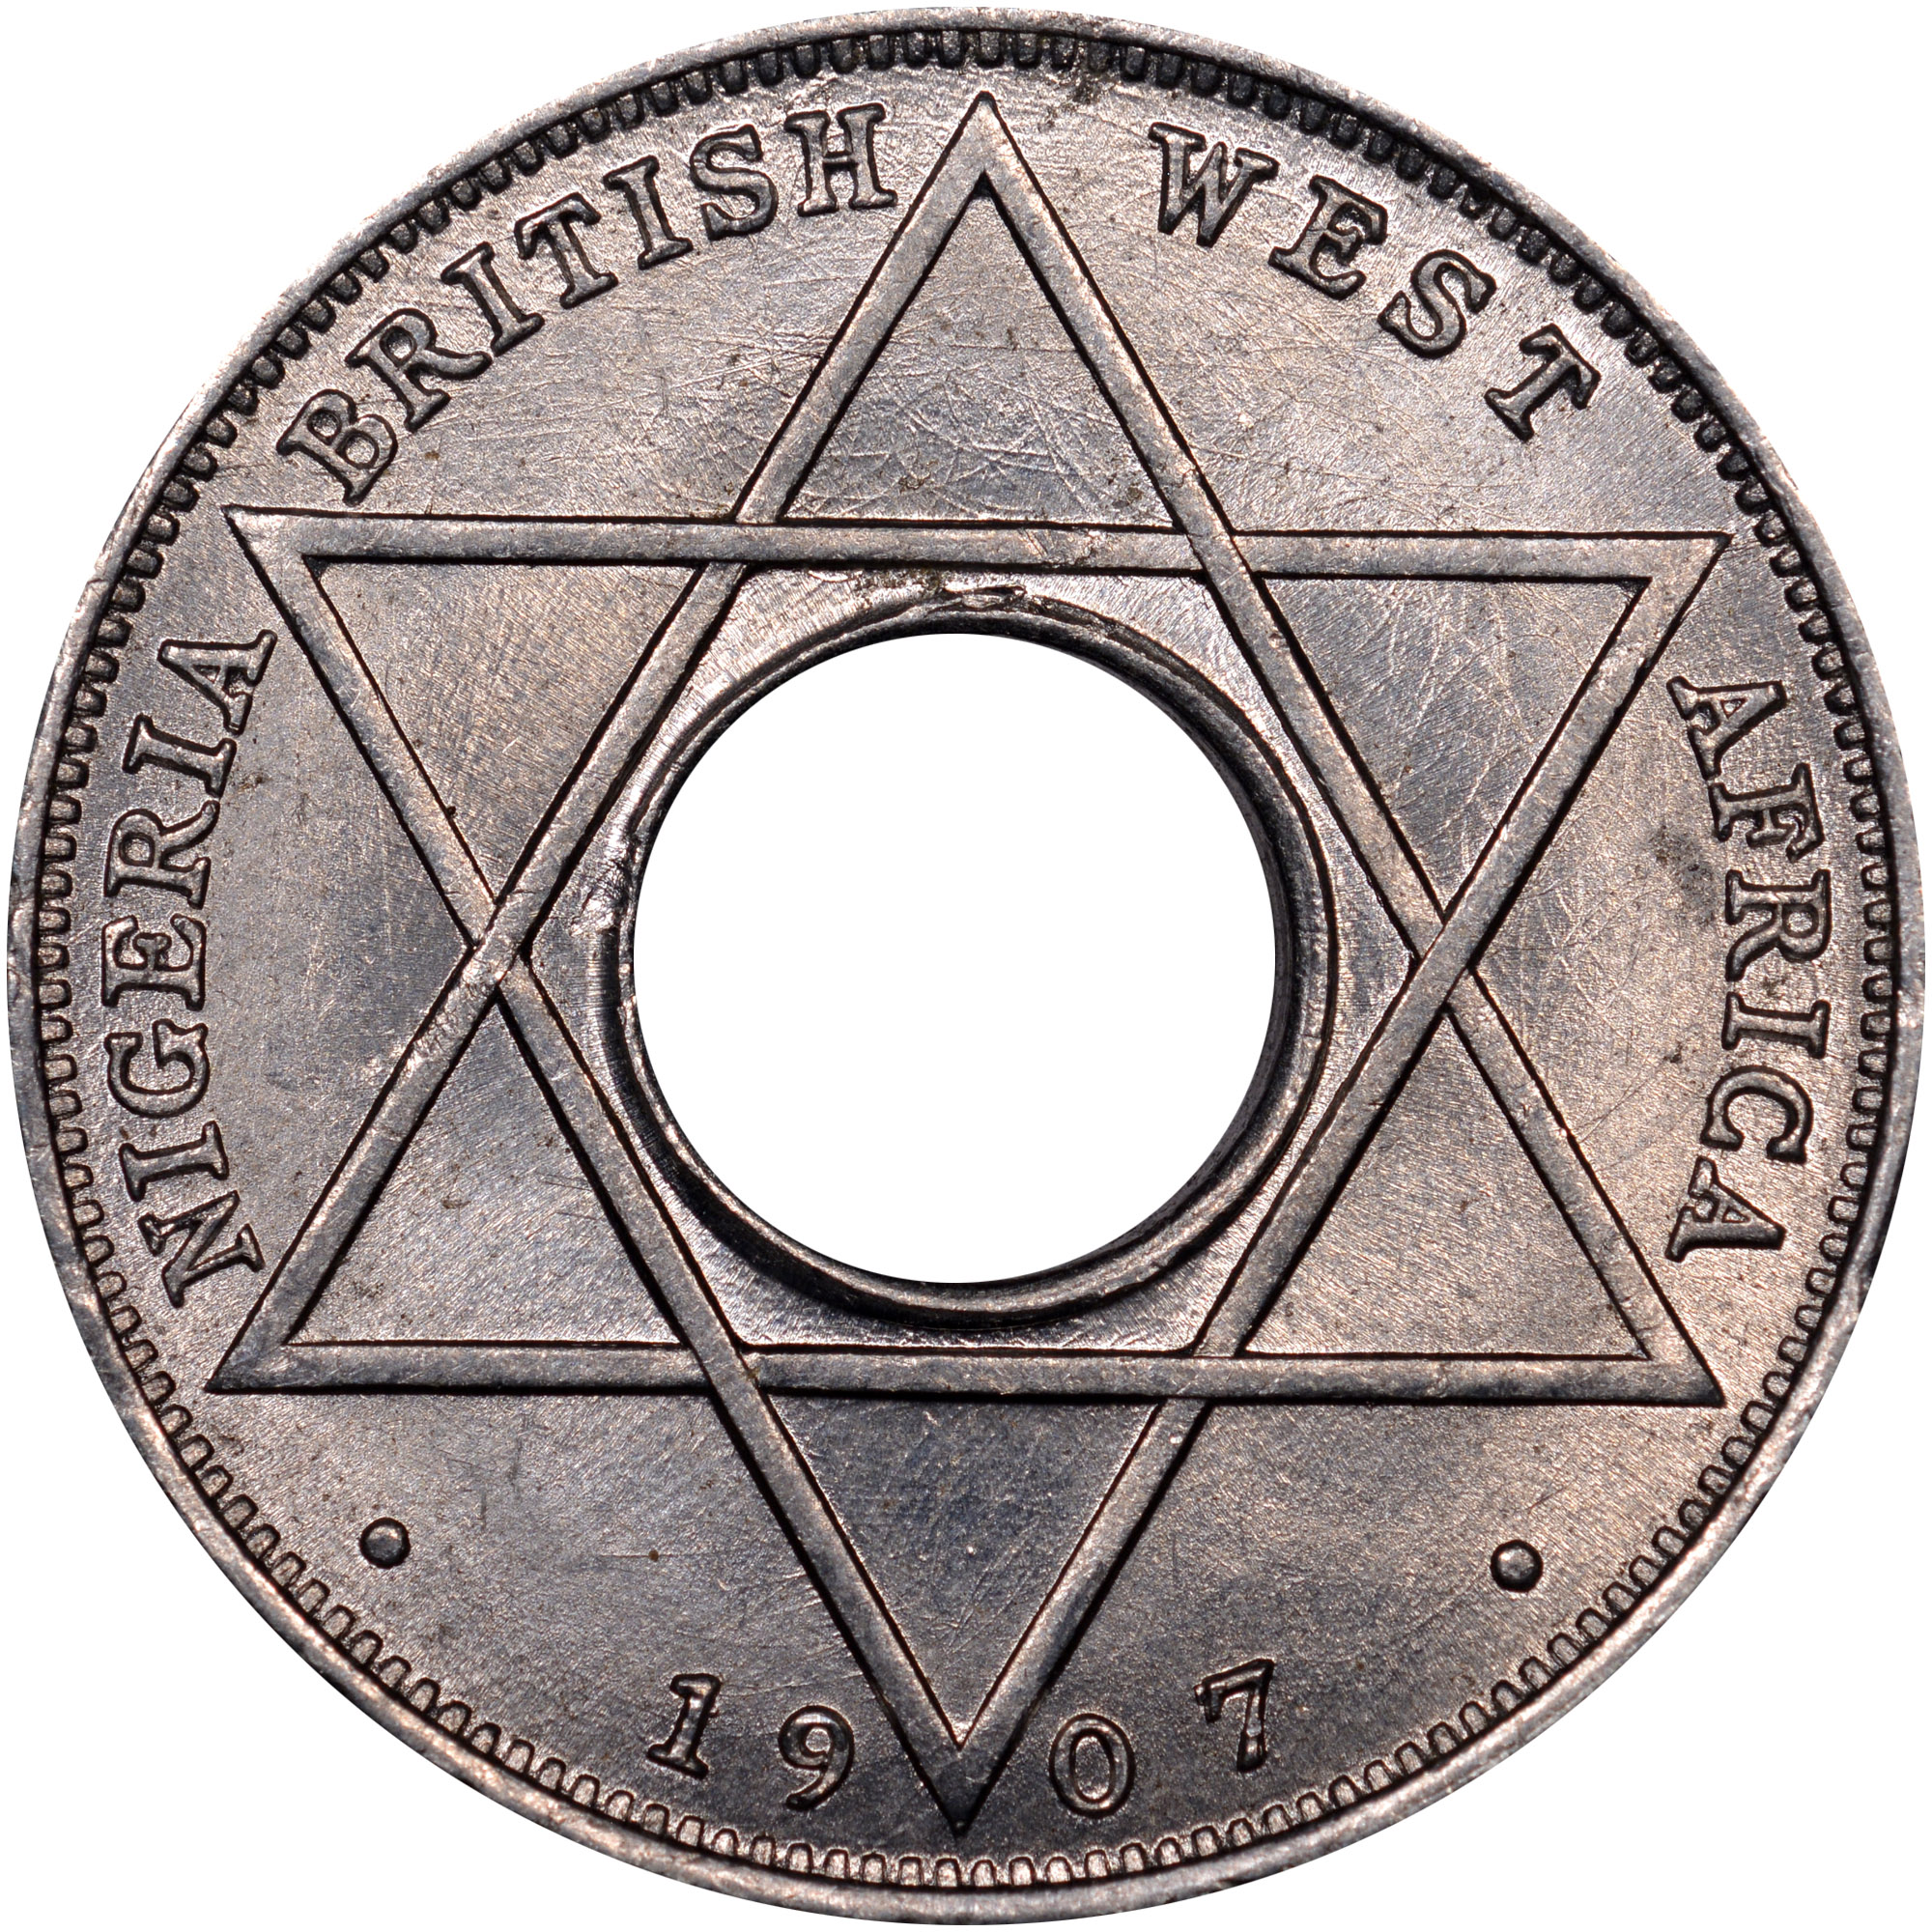 1907-1908 British West Africa 1/10 Penny reverse